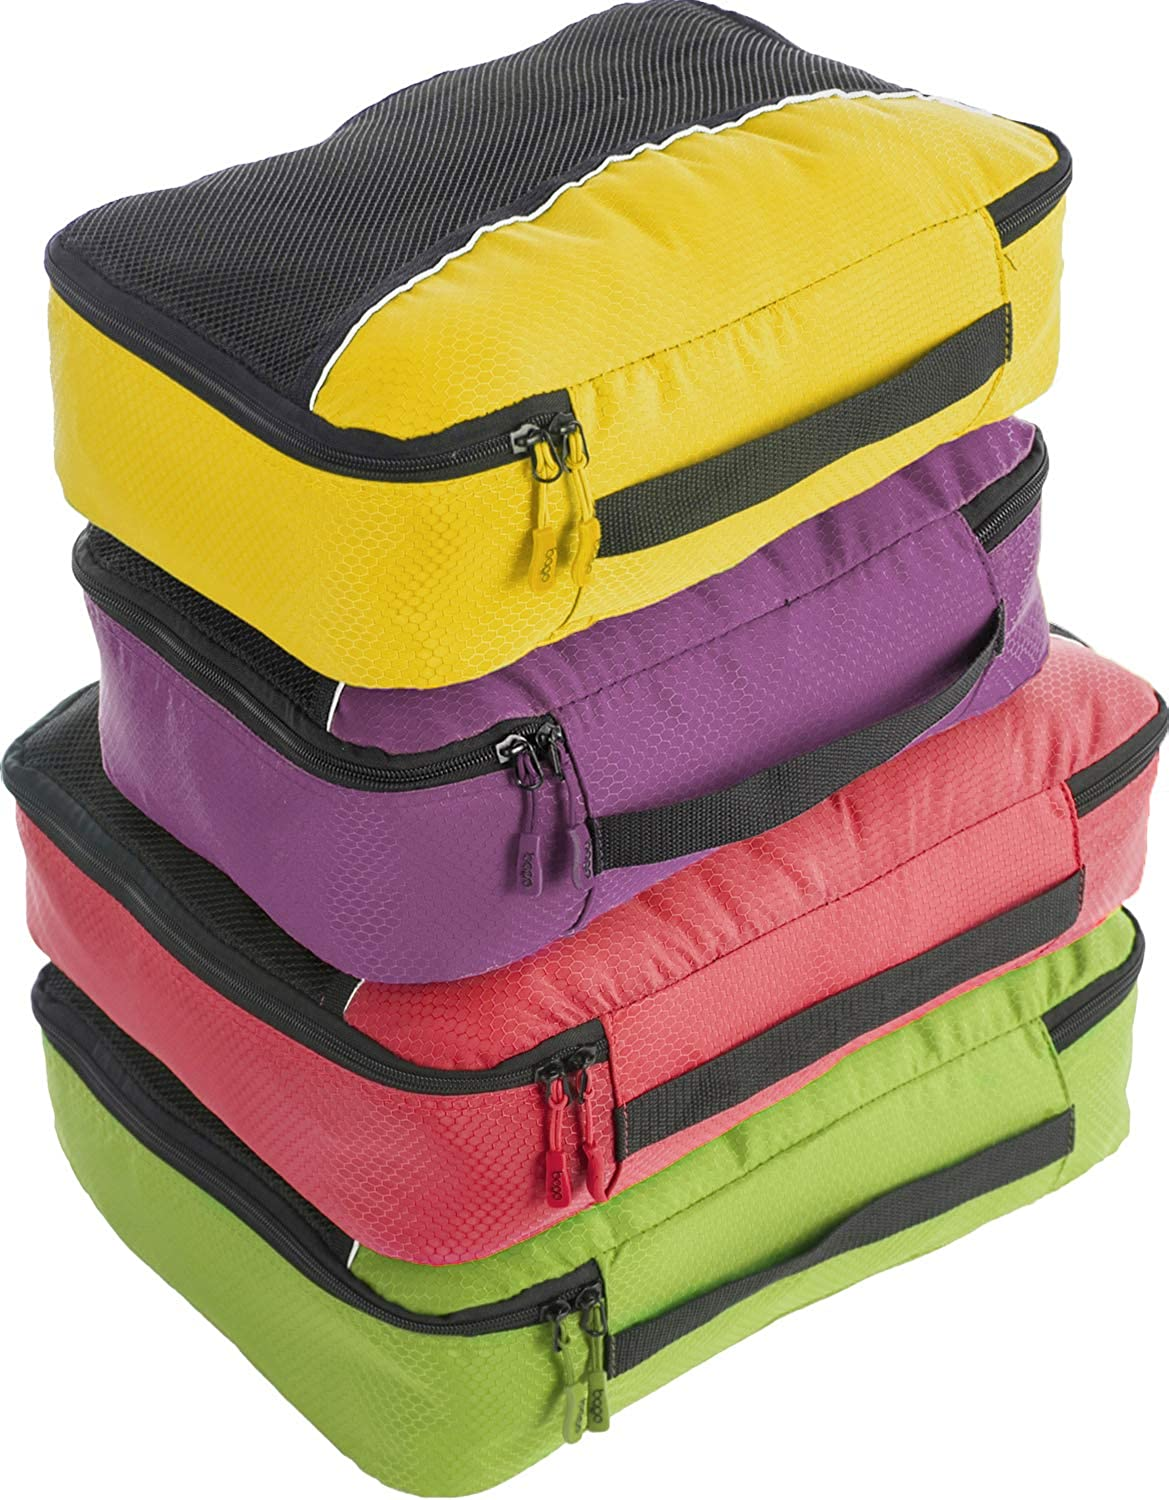 c795bac6a4ae bago 4 Set Packing Cubes for Travel - Luggage & Suitcase Organizer - Cube  Set